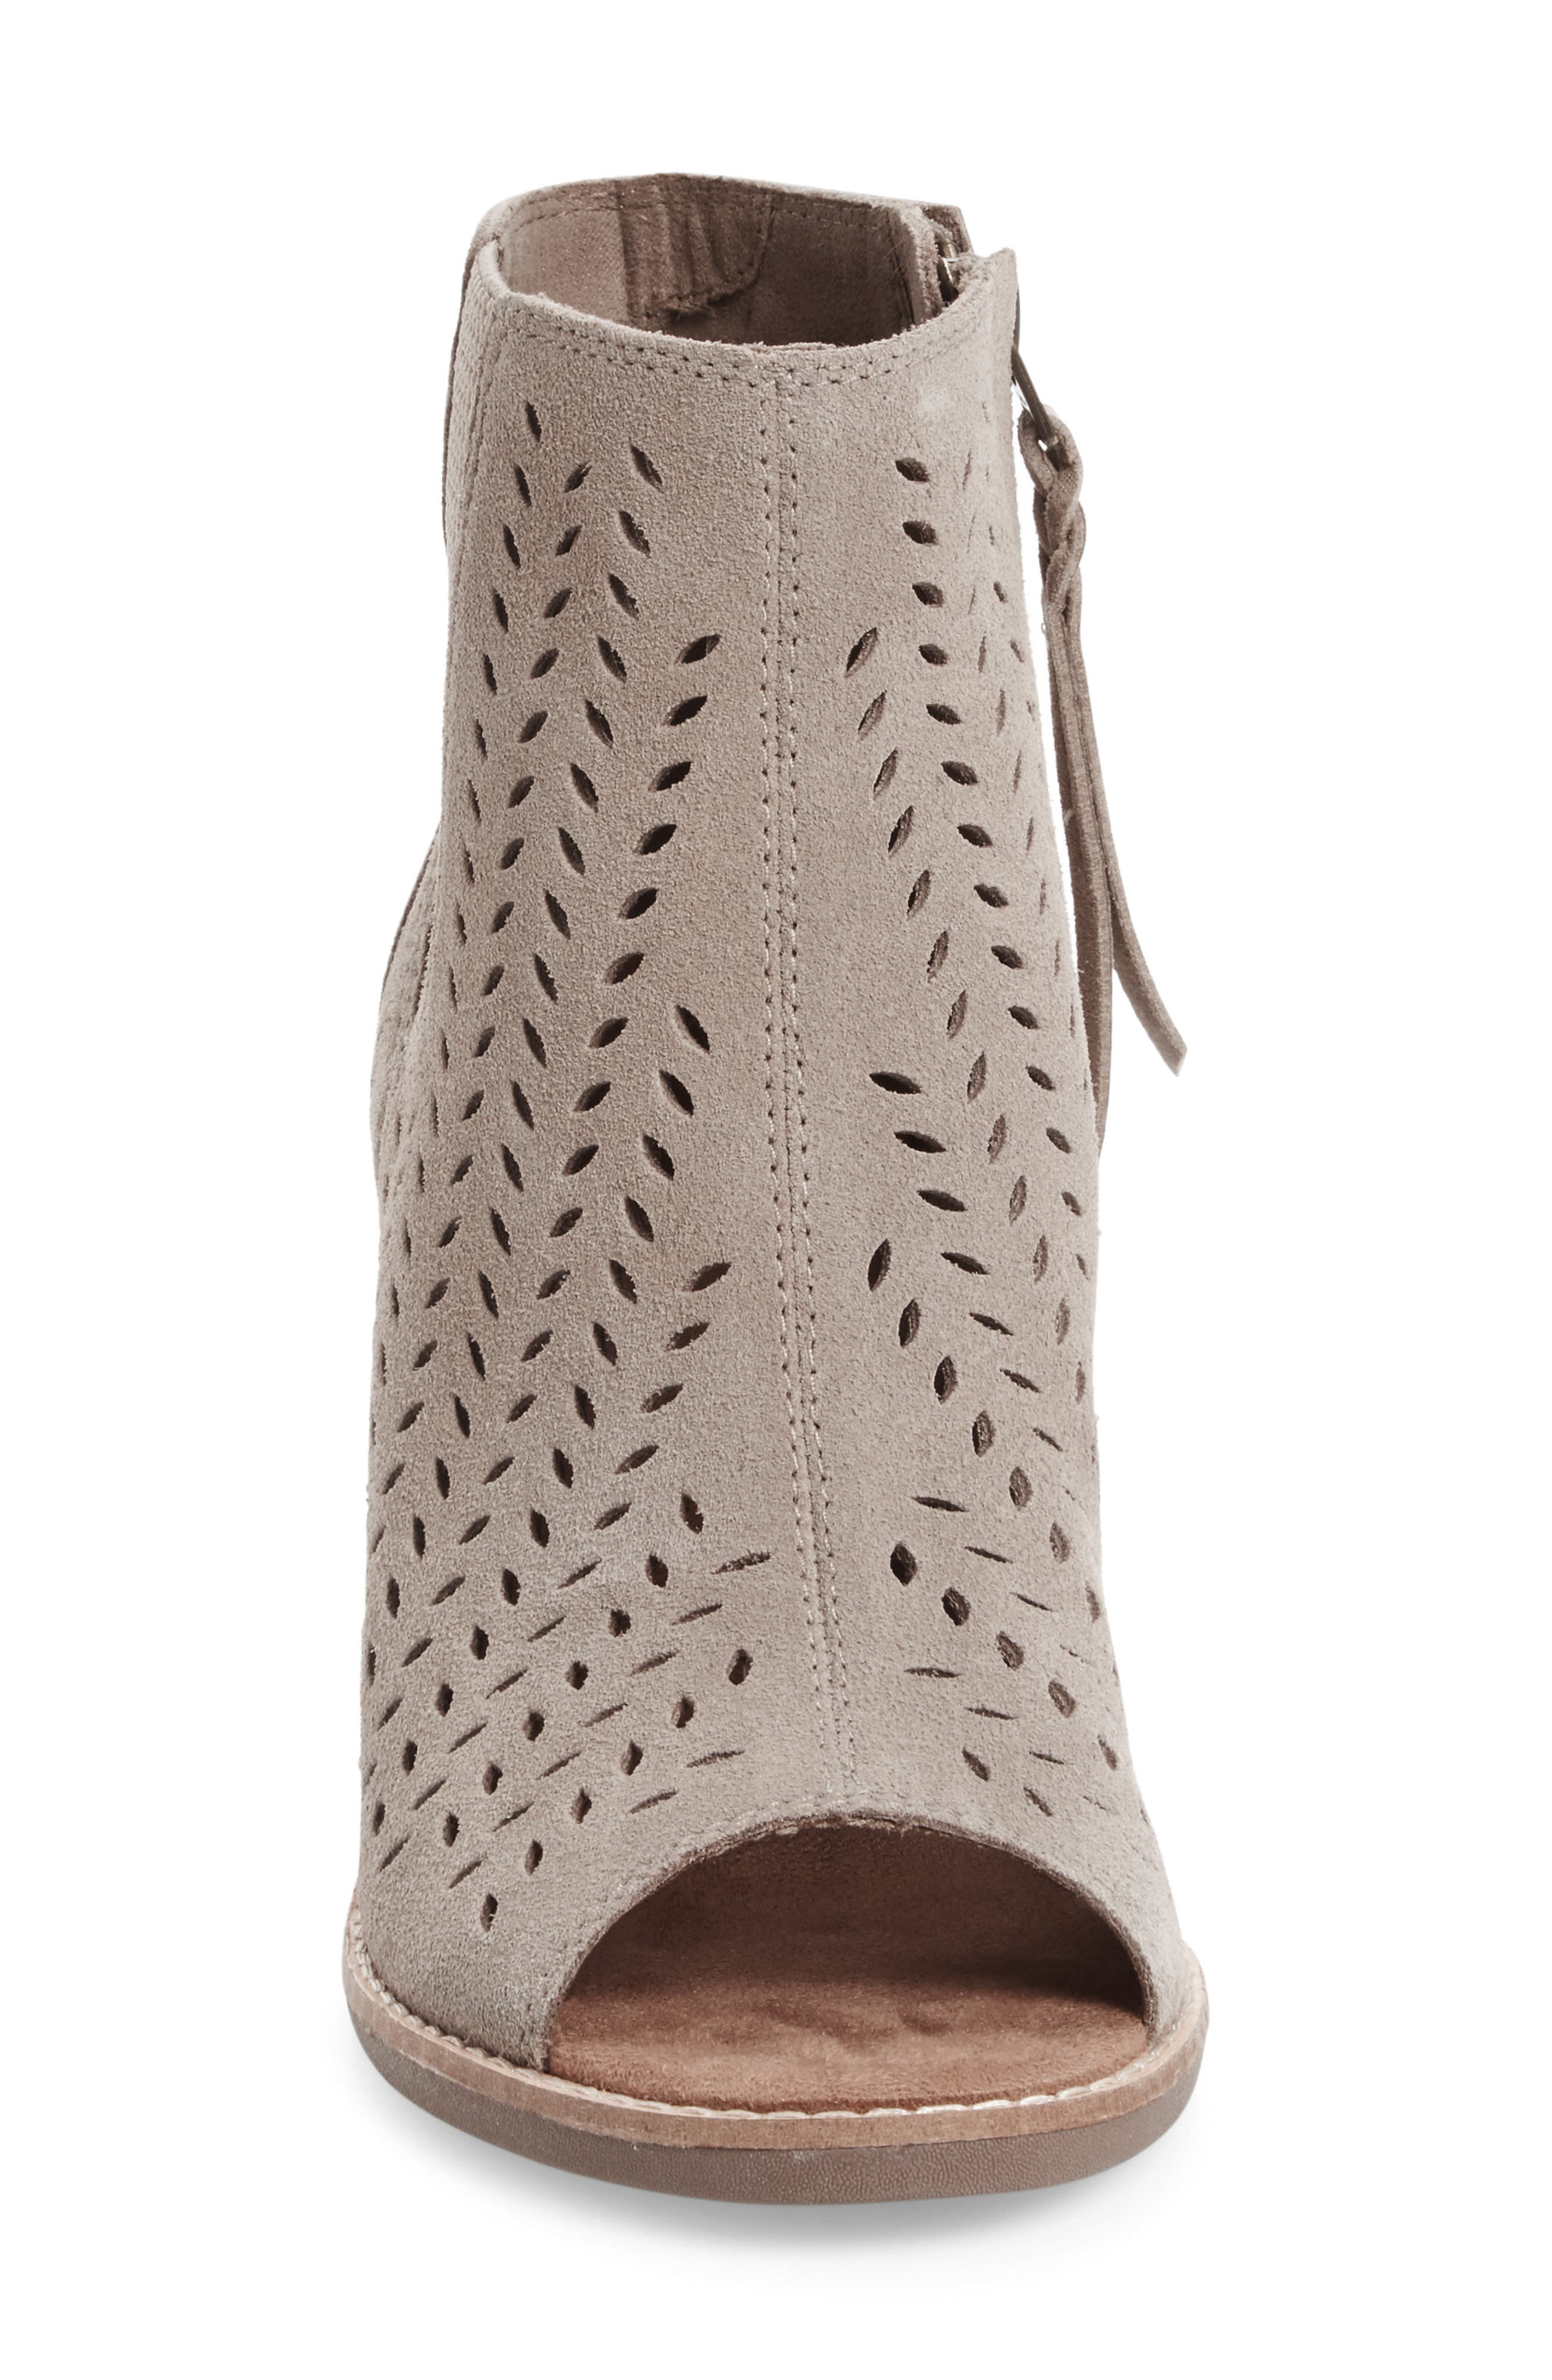 Alternate Image 3  - TOMS Majorca Perforated Suede Bootie (Women)